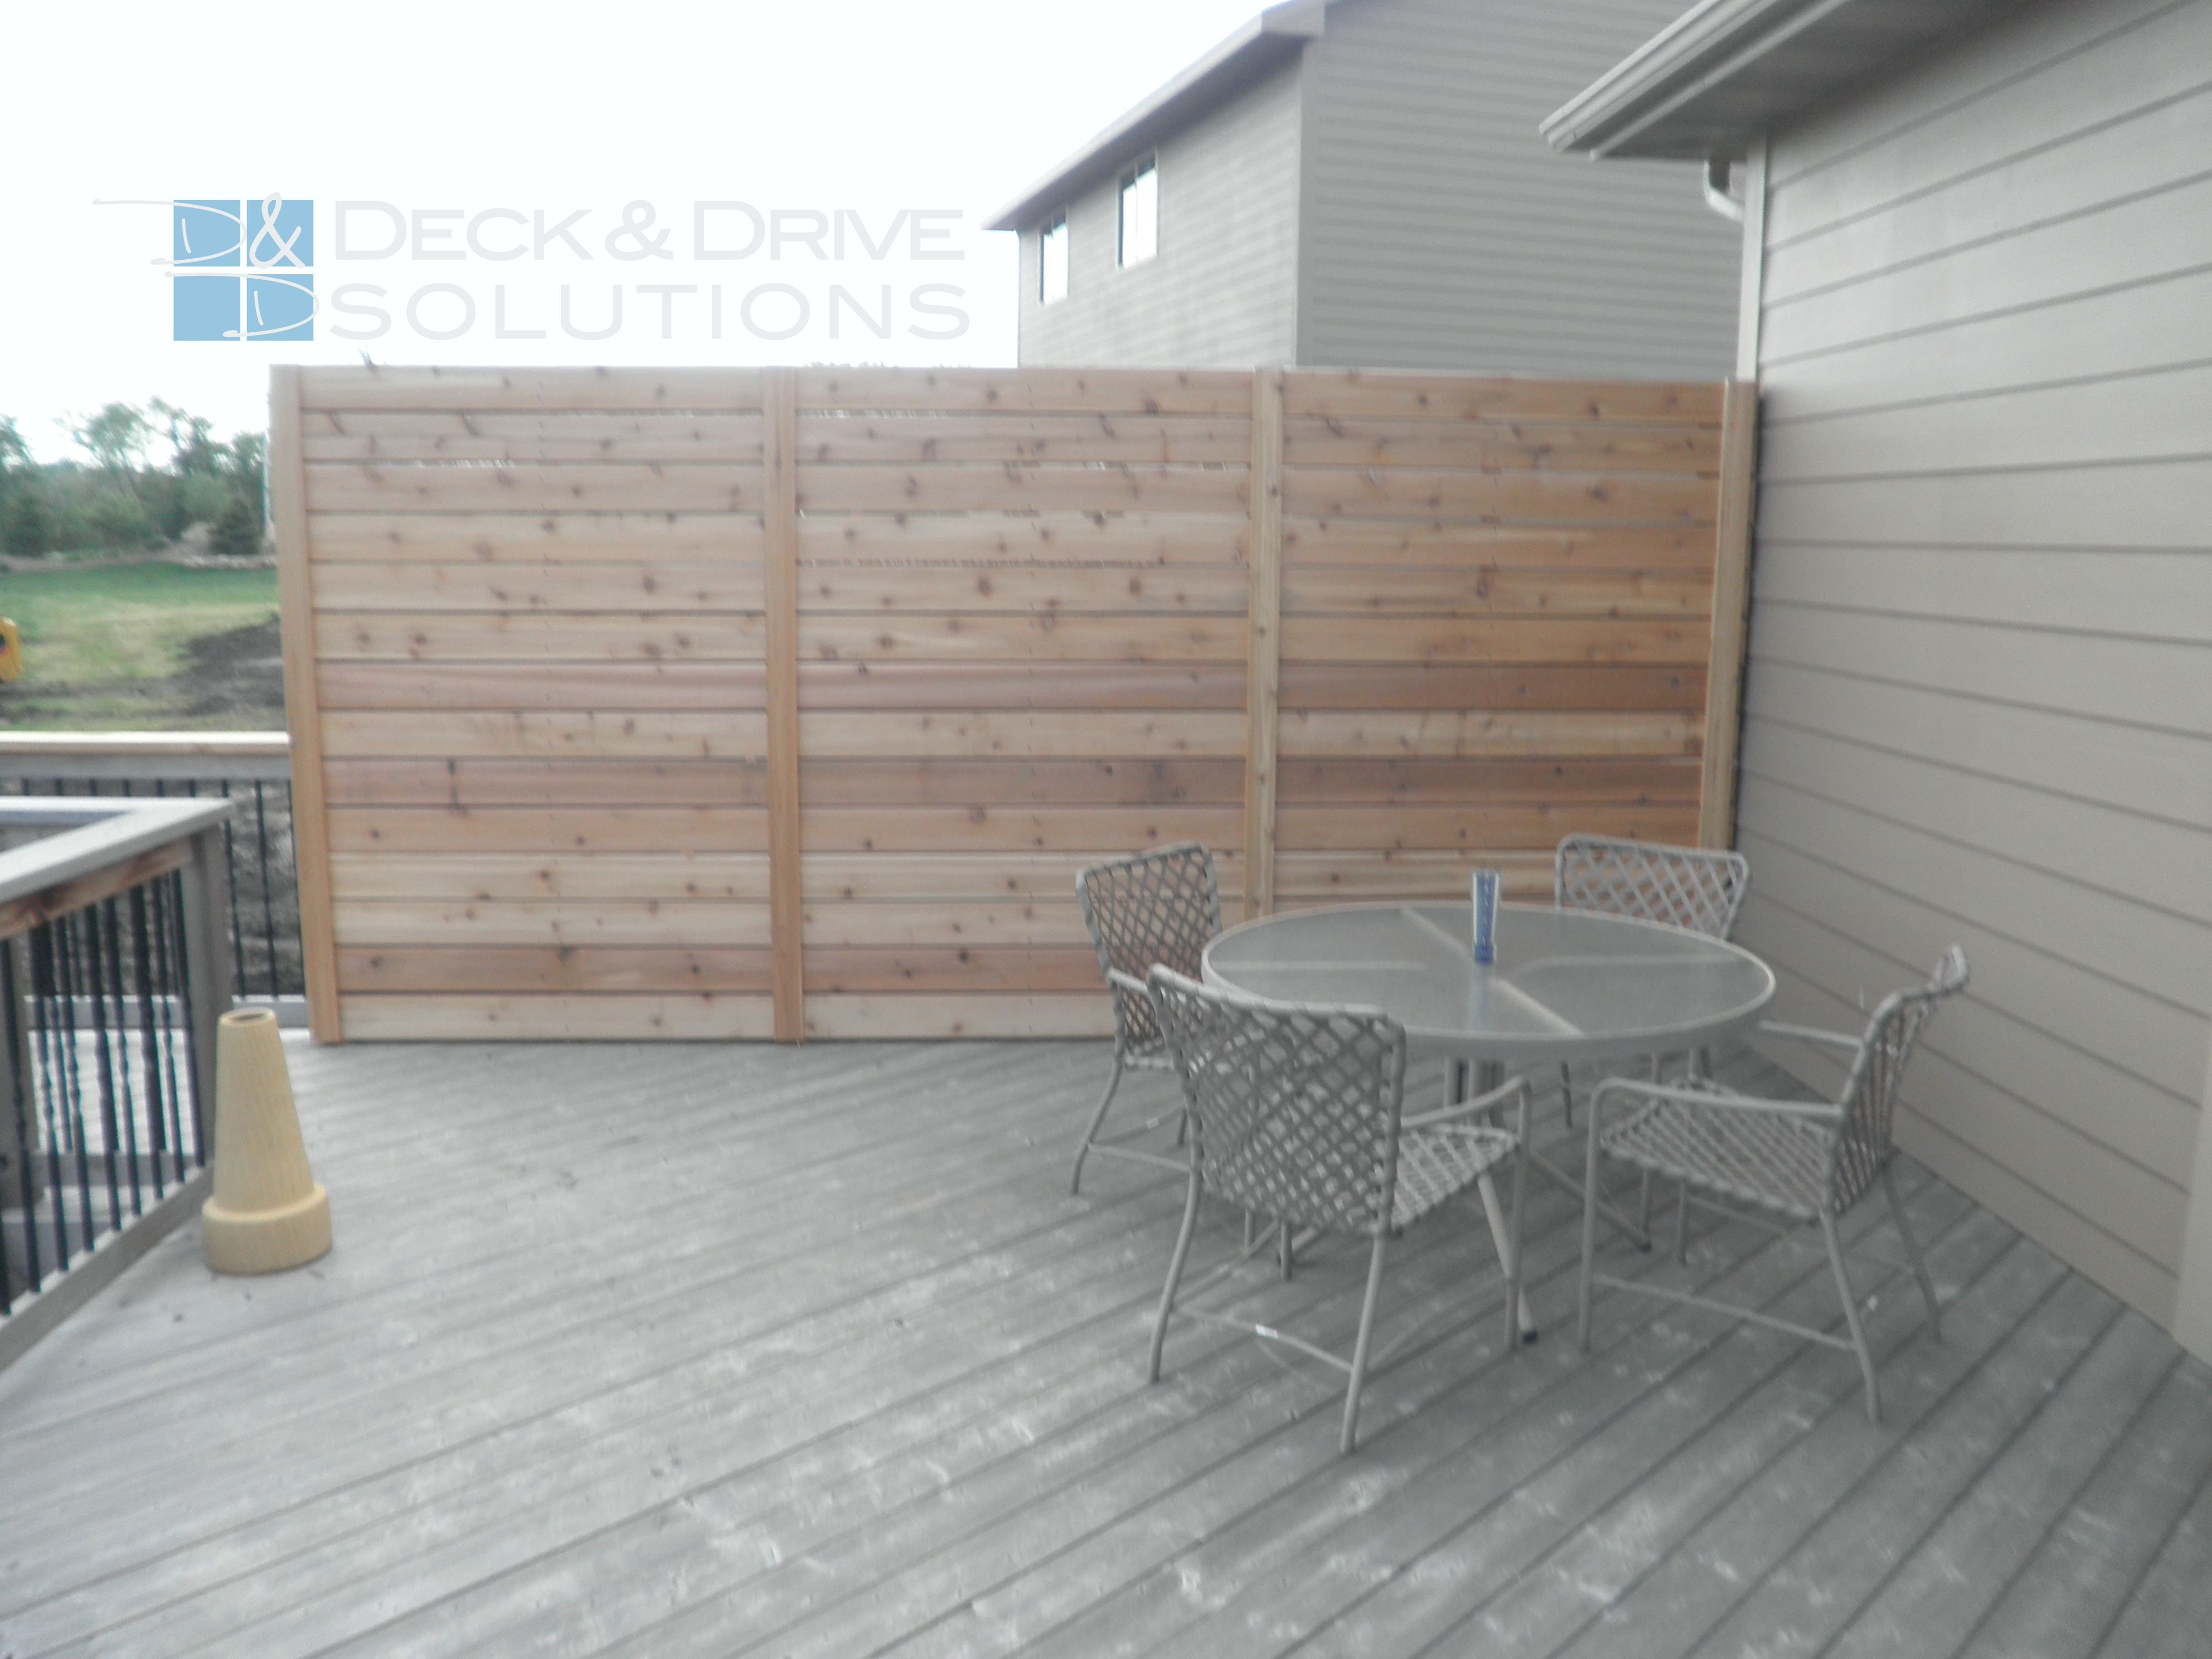 Design Deck Privacy Walls new custom privacy wall on deck and drive solutions solutions